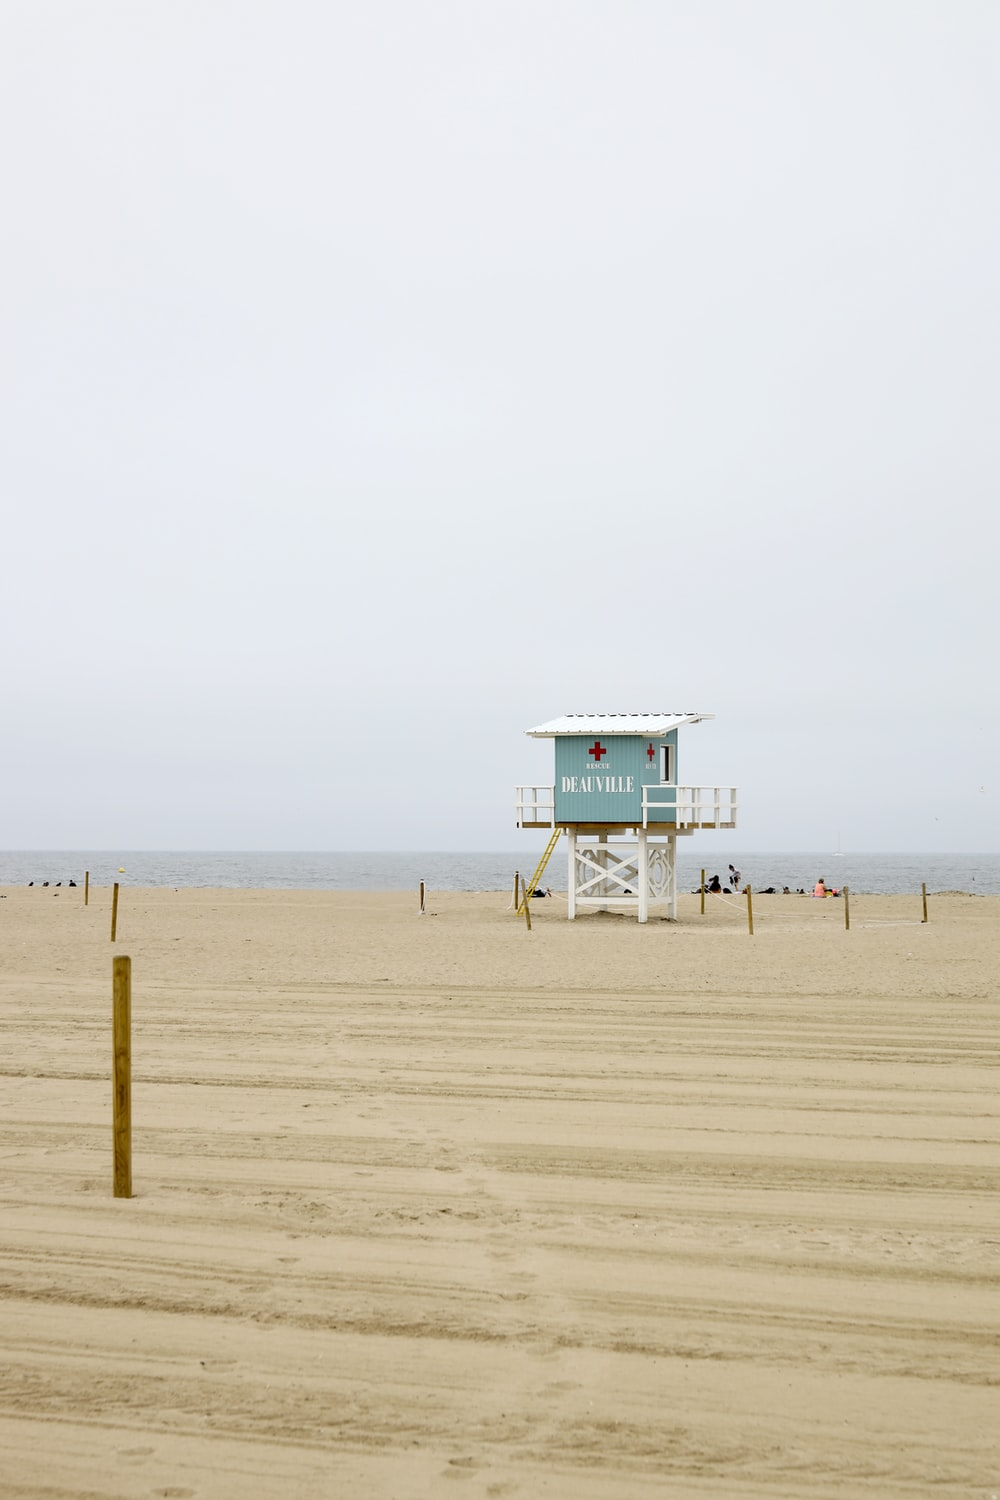 blue and white lifeguard tower on beach